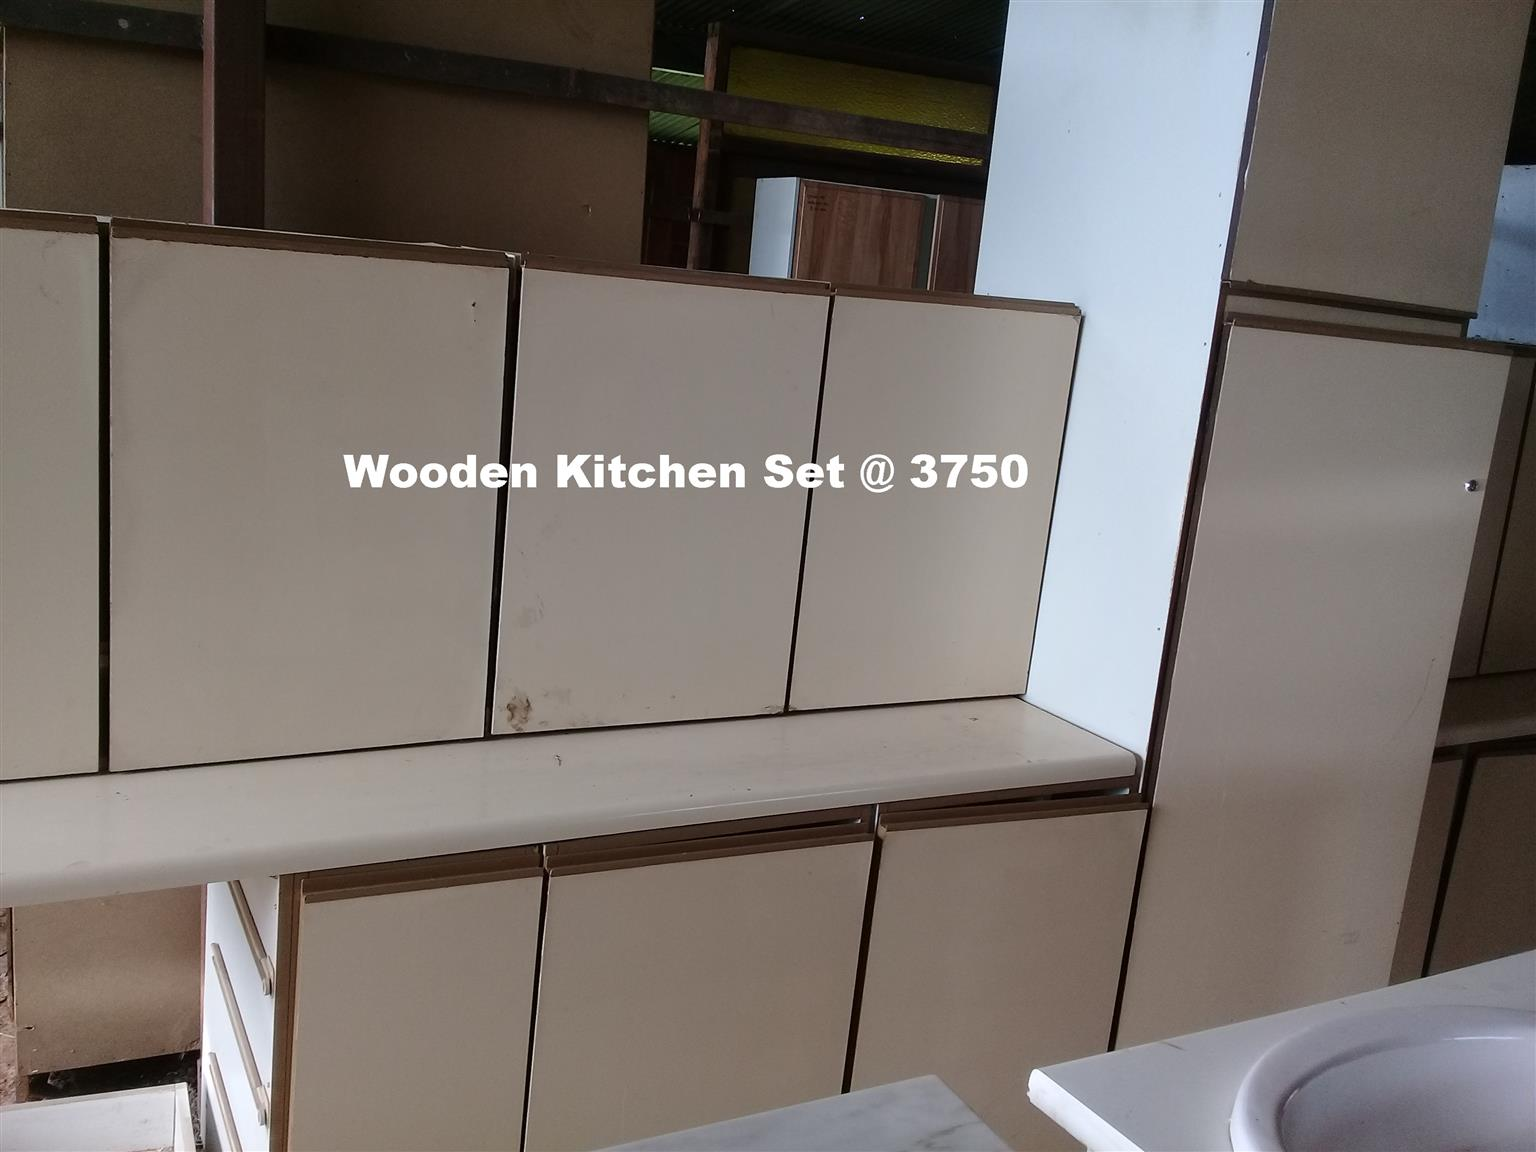 Wooden kitchen set junk mail